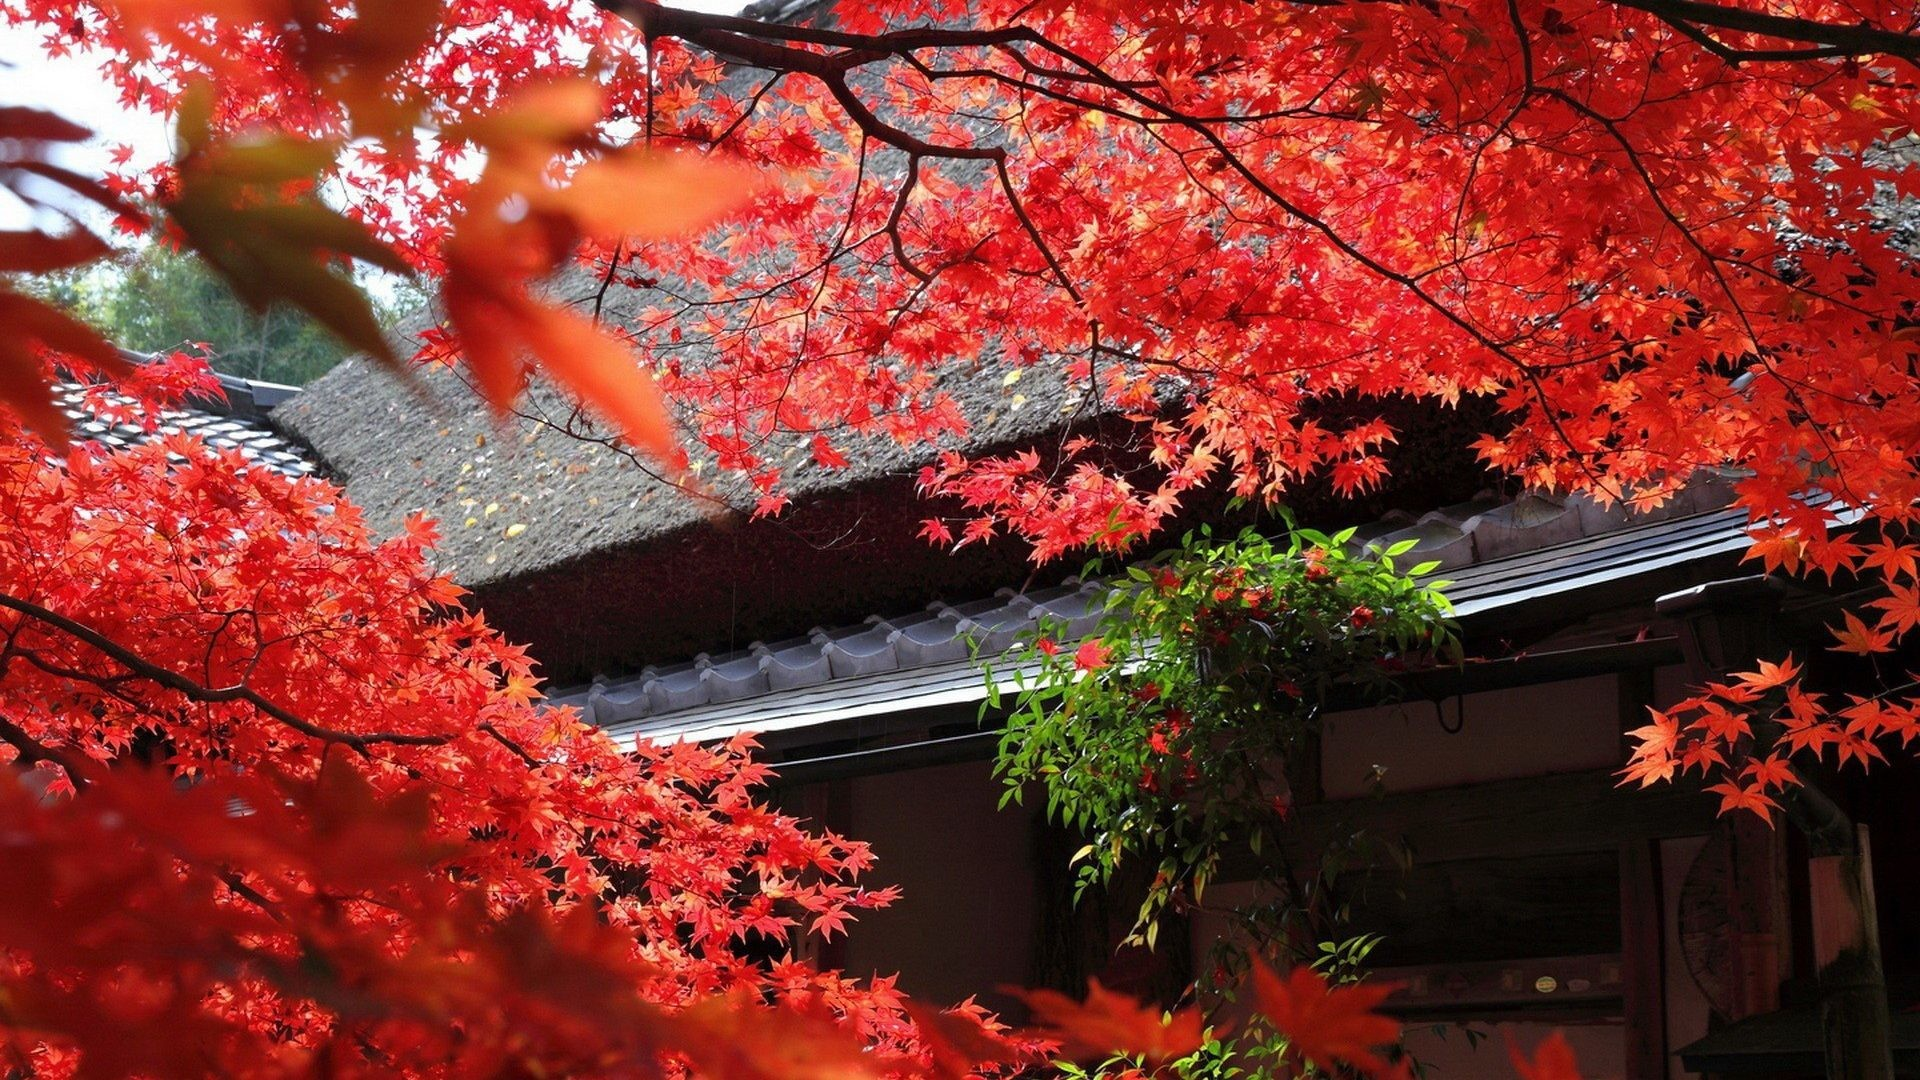 Leaves – Leaves Autumn Red Japan Tree Nice Nature Picture World for HD 16:9